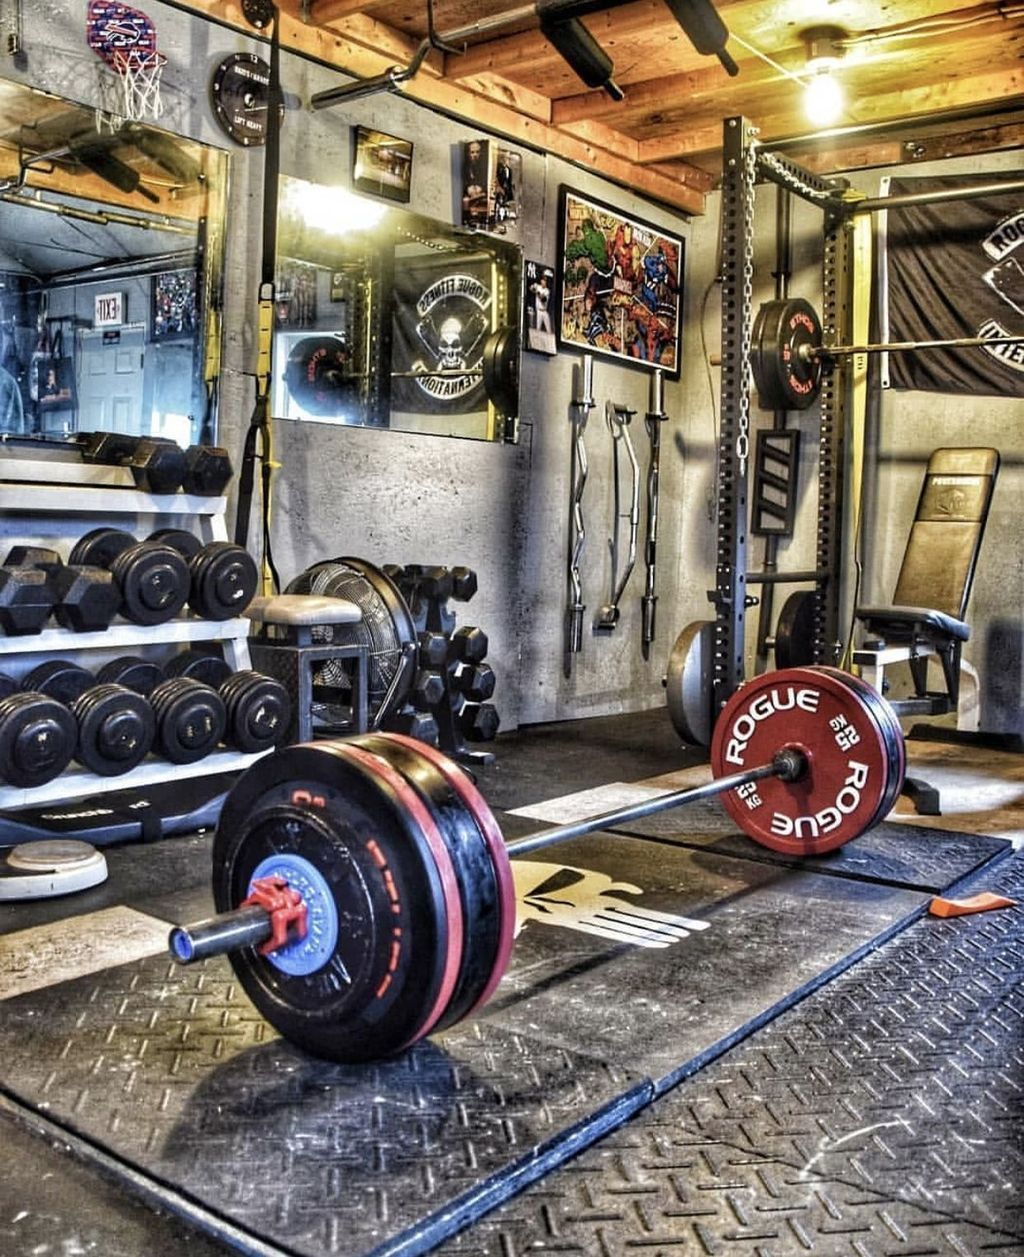 Home Gym Design Ideas Basement: 46 The Best Home Gym Garage Ideas To Maximize Your Home